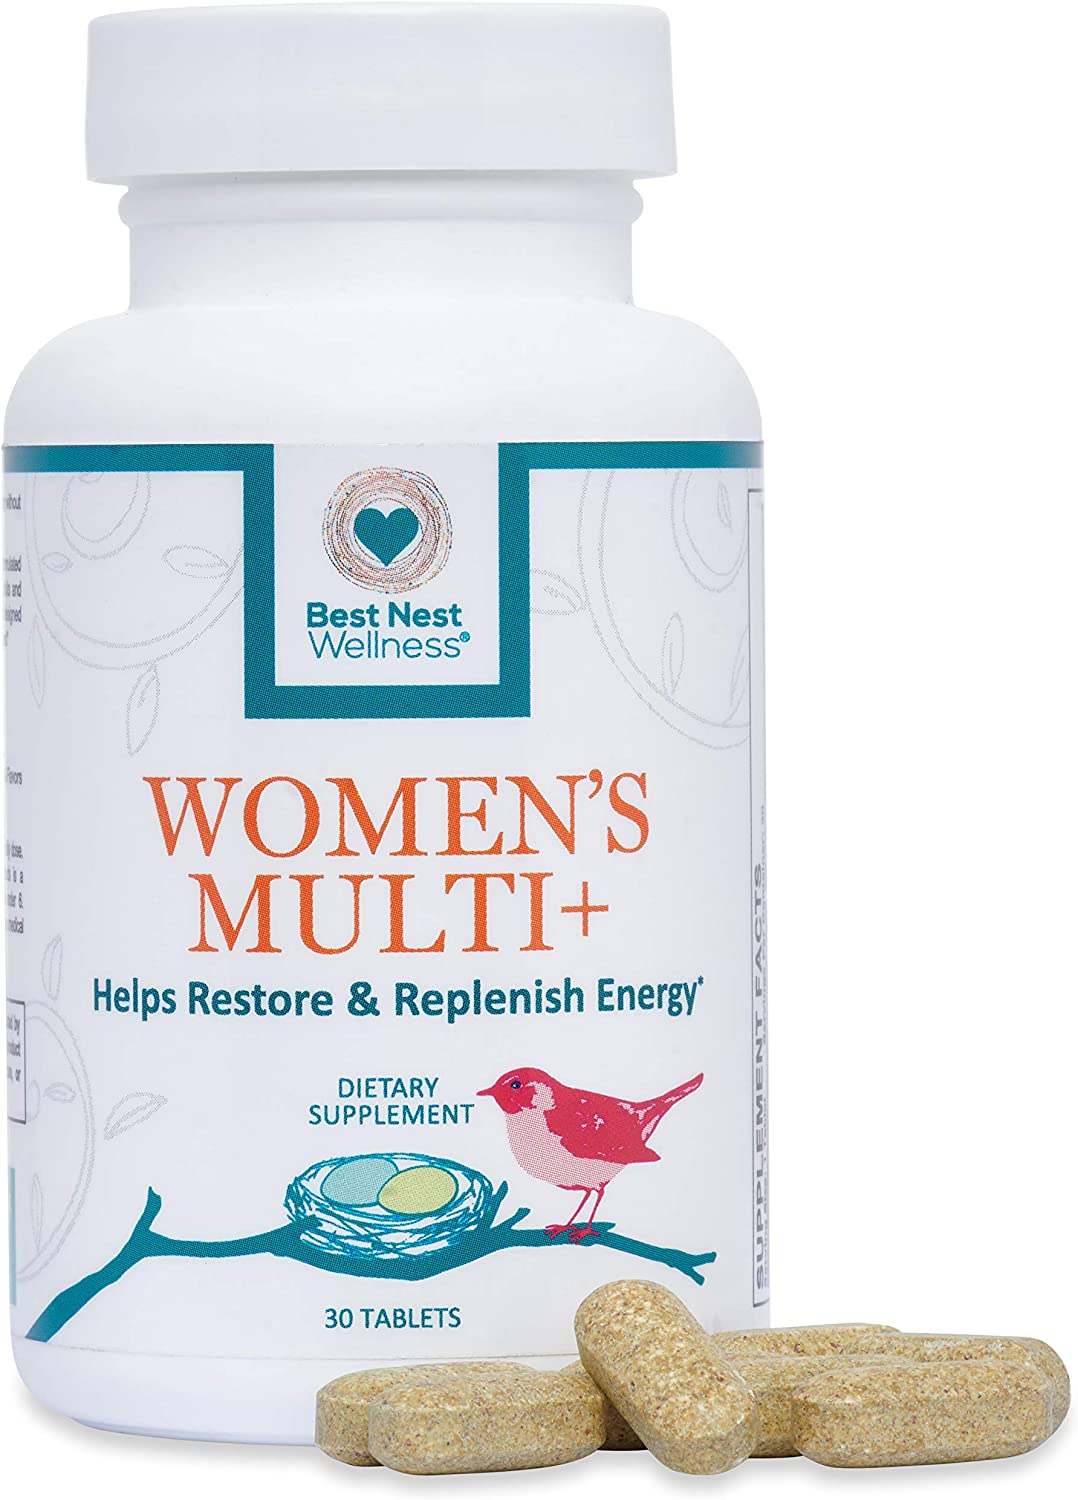 Best Nest Women s Multi , Methylfolate, Methylcobalamin B12 , Vegan, Multivitamins, Probiotics, Made with 100 Natural Whole Food Organic Blend, Once Daily Multivitamin Supplement, 30 Ct